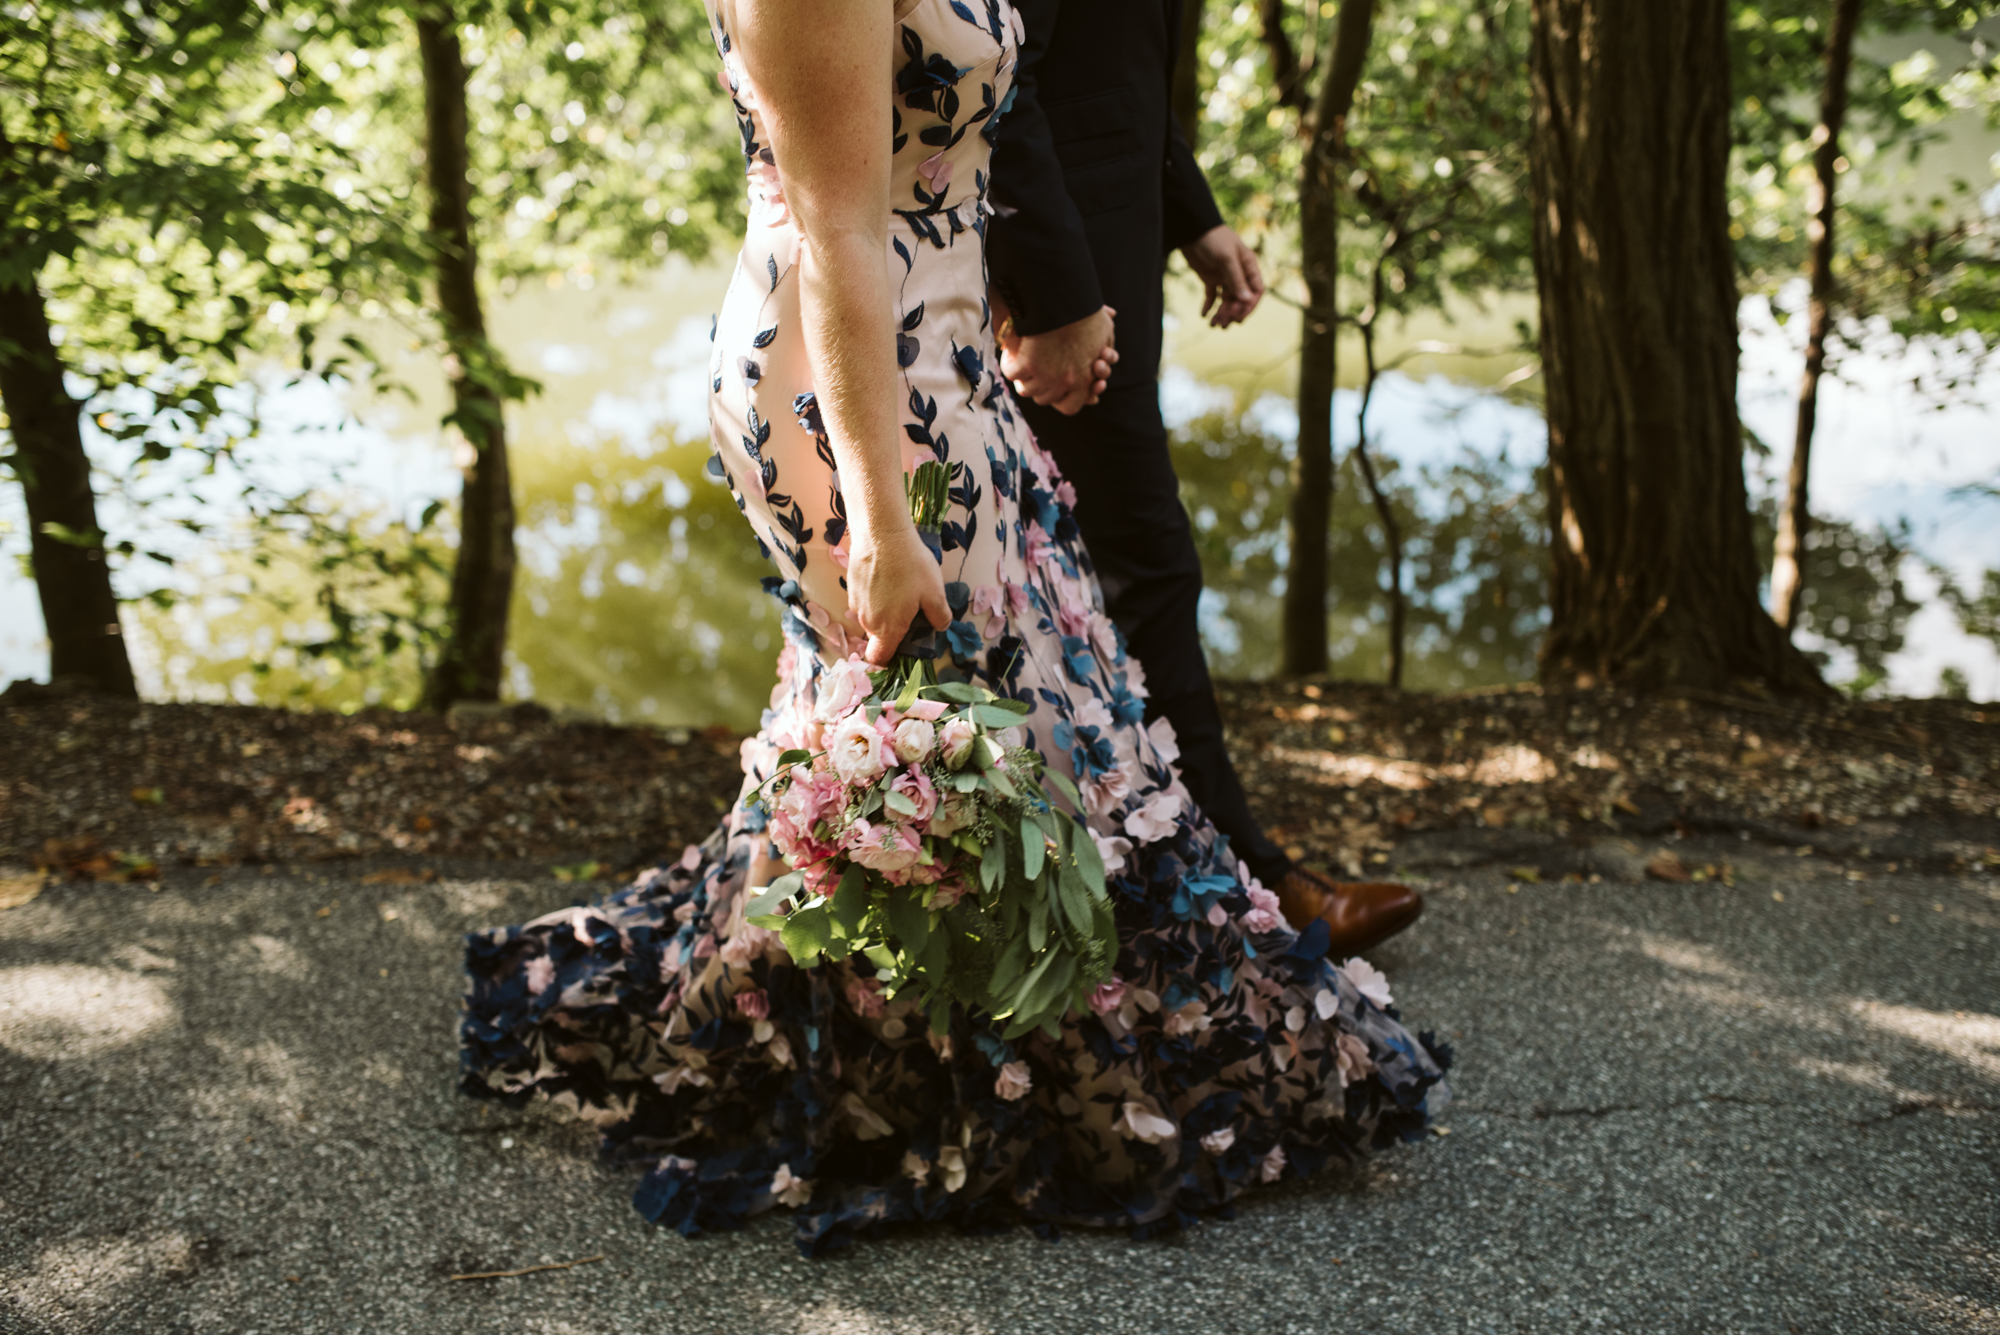 Pop-up Ceremony, Outdoor Wedding, Casual, Simple, Lake Roland, Baltimore, Maryland Wedding Photographer, Laid Back, Bride and Groom Walking, Marchesa Notte Dress, DIY Flowers